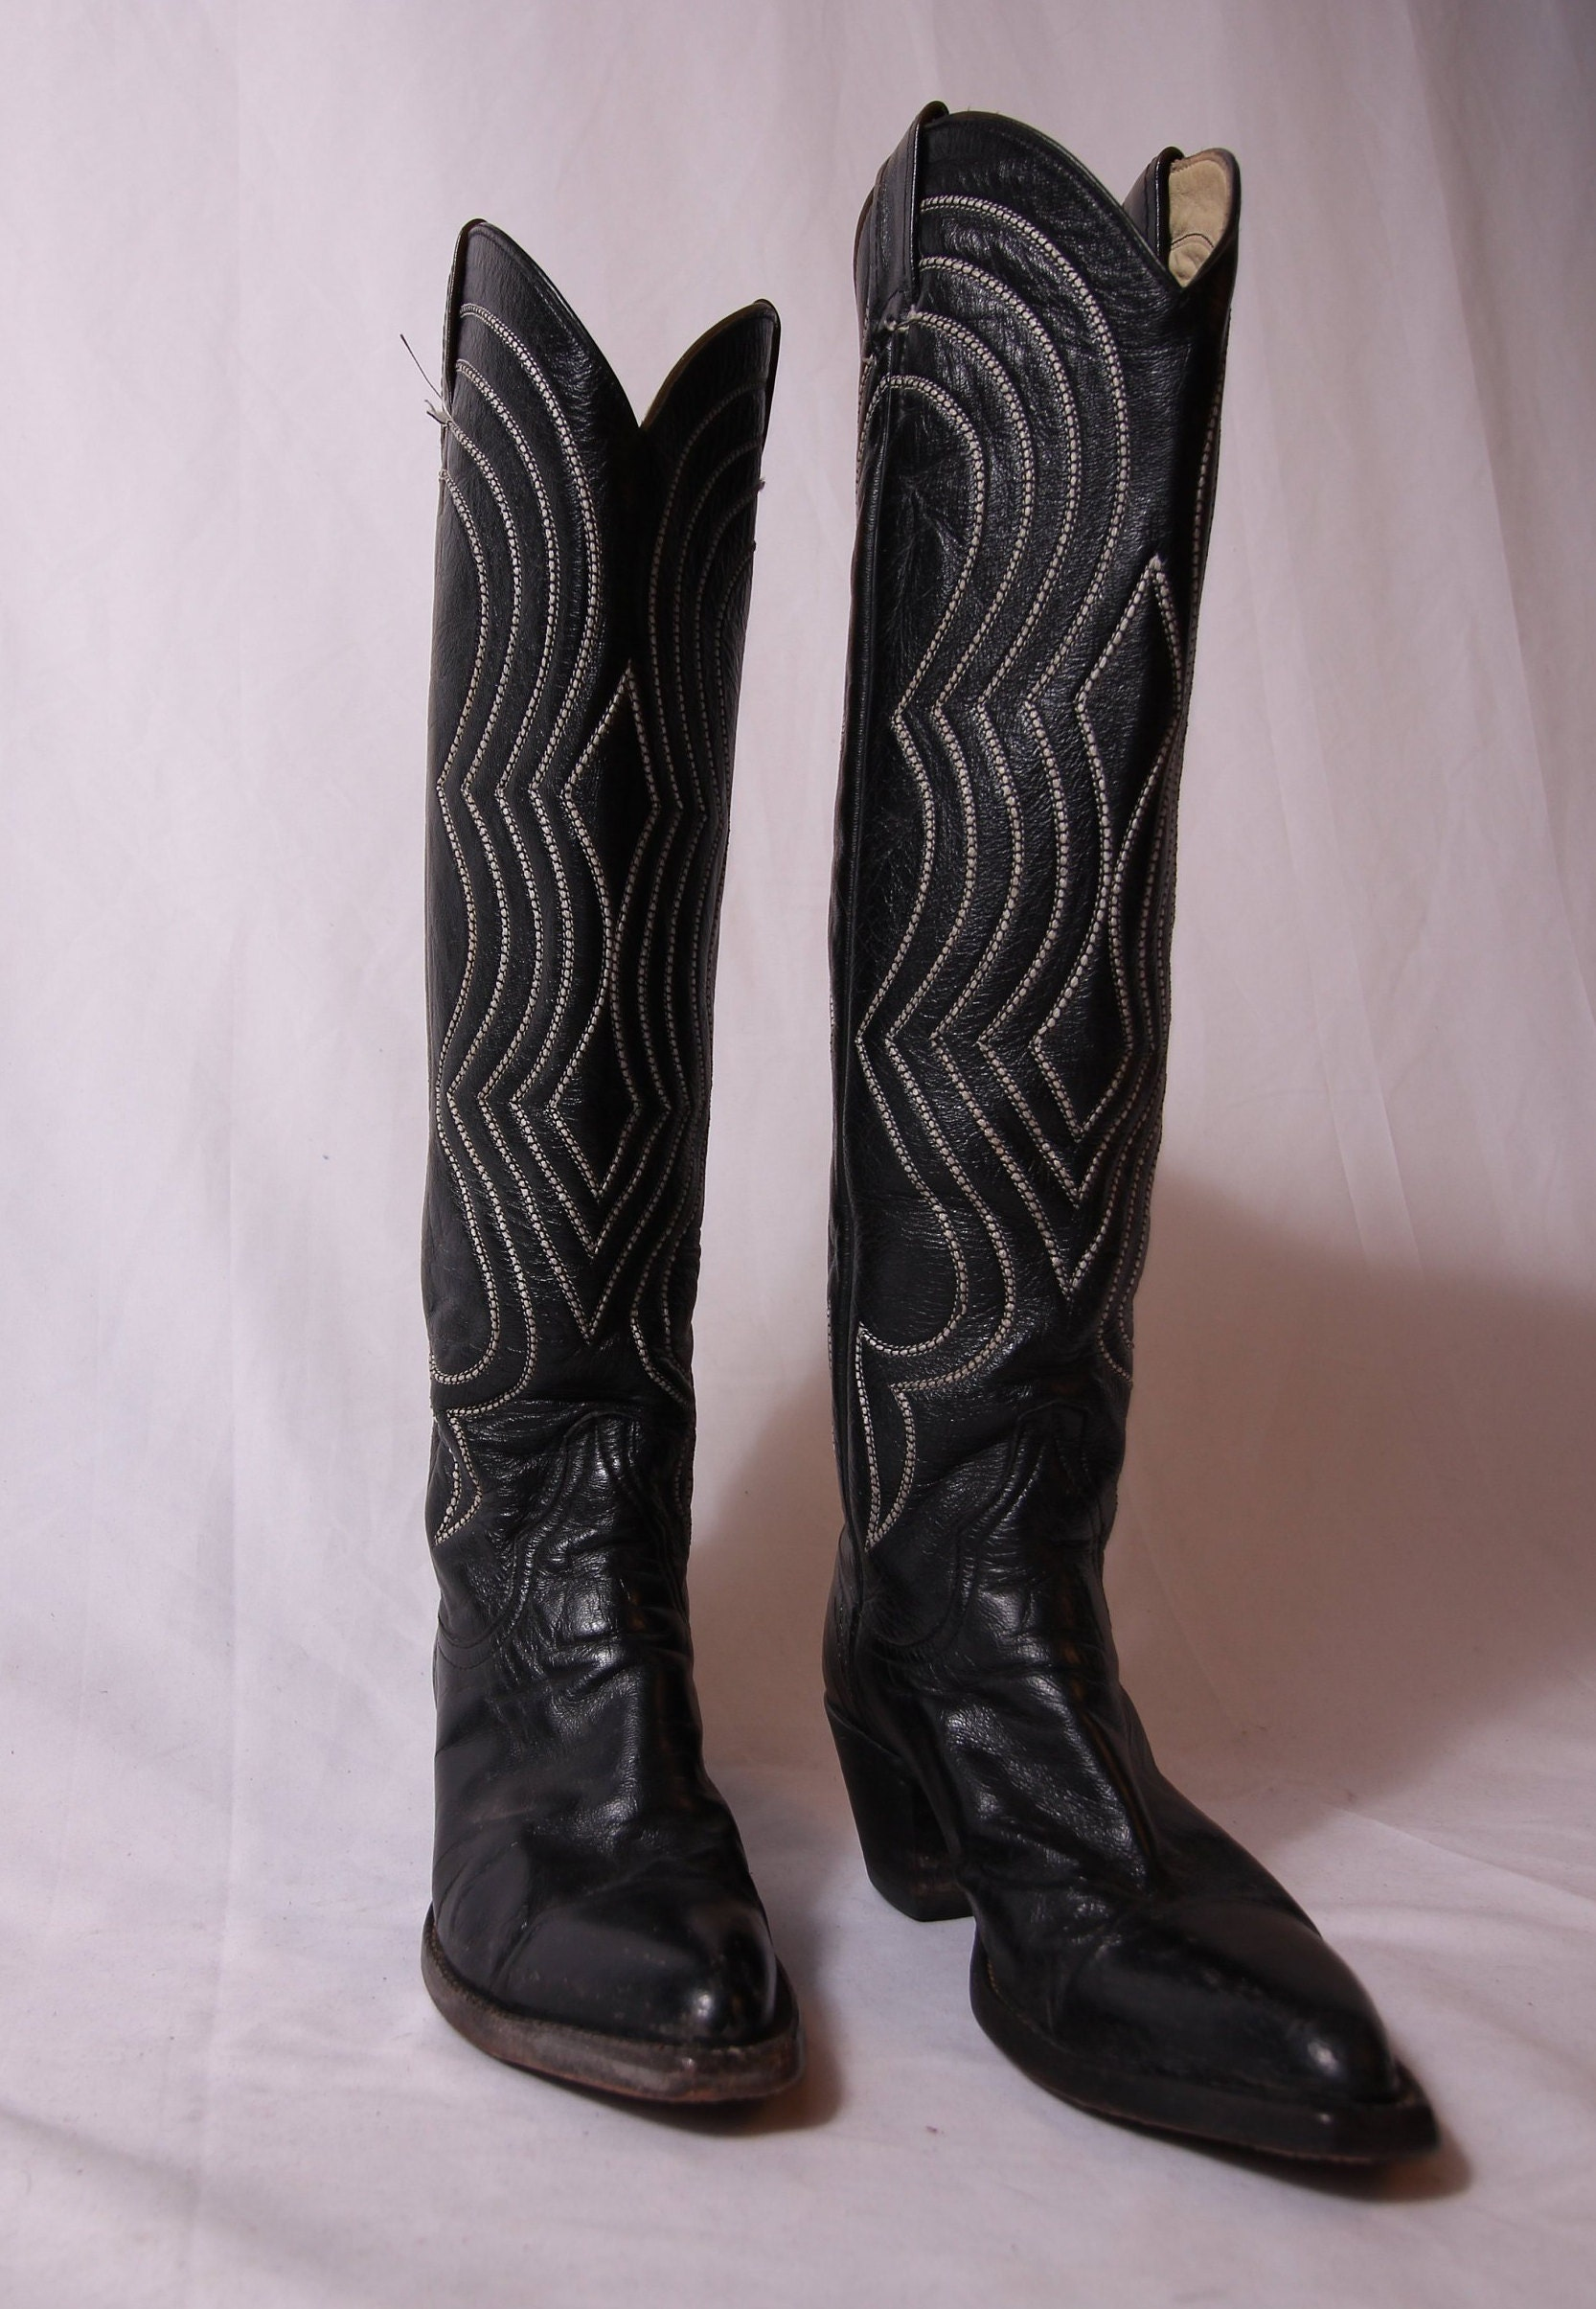 987e25e9fb6 Vintage Larry Mahan's Tall Black Leather Cowyboy W/ White Stitching ...